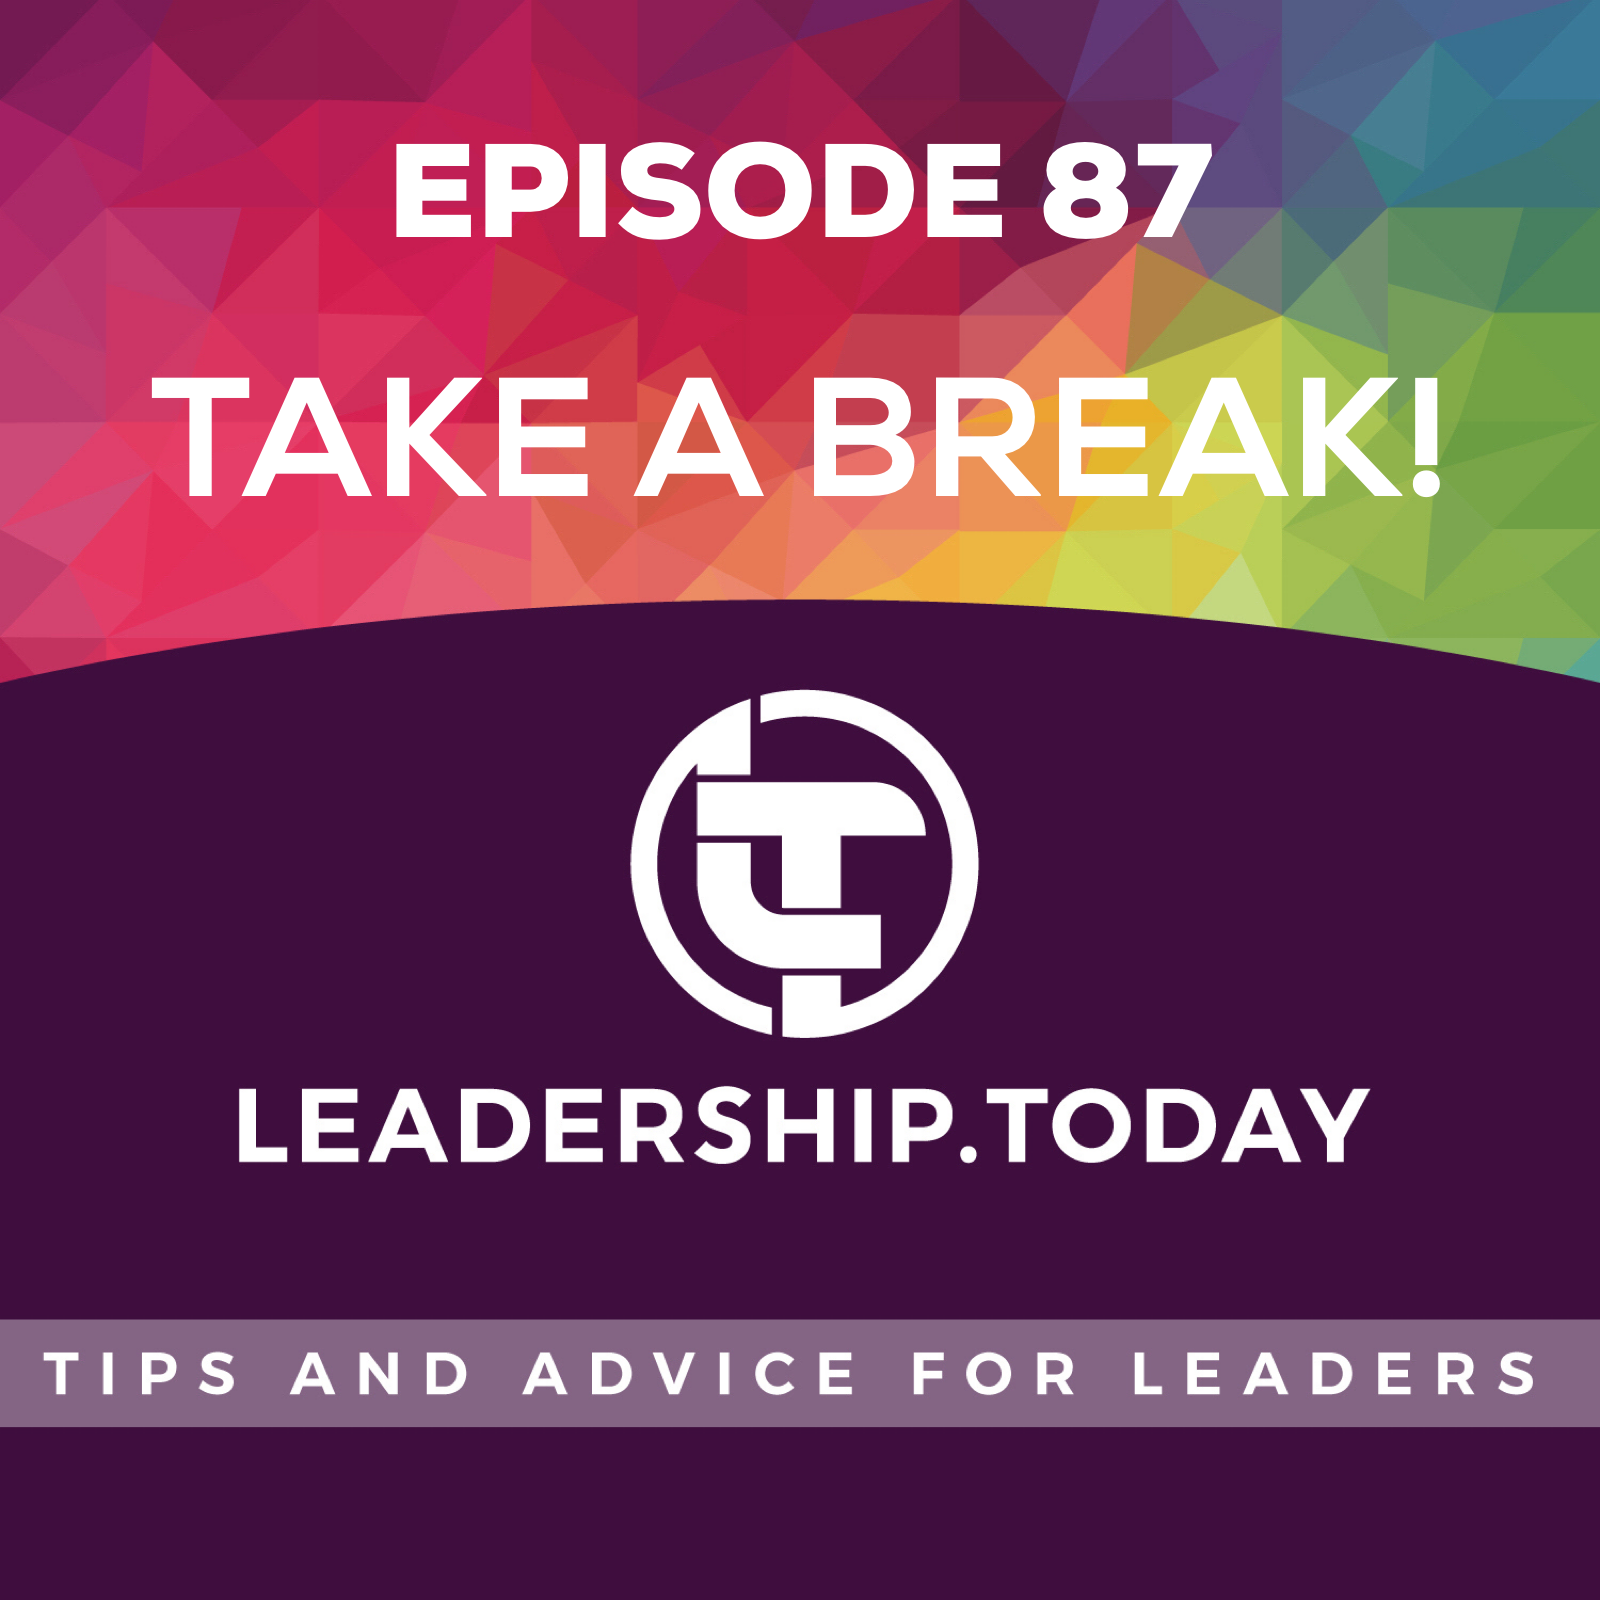 Episode 87 - Take a Break!